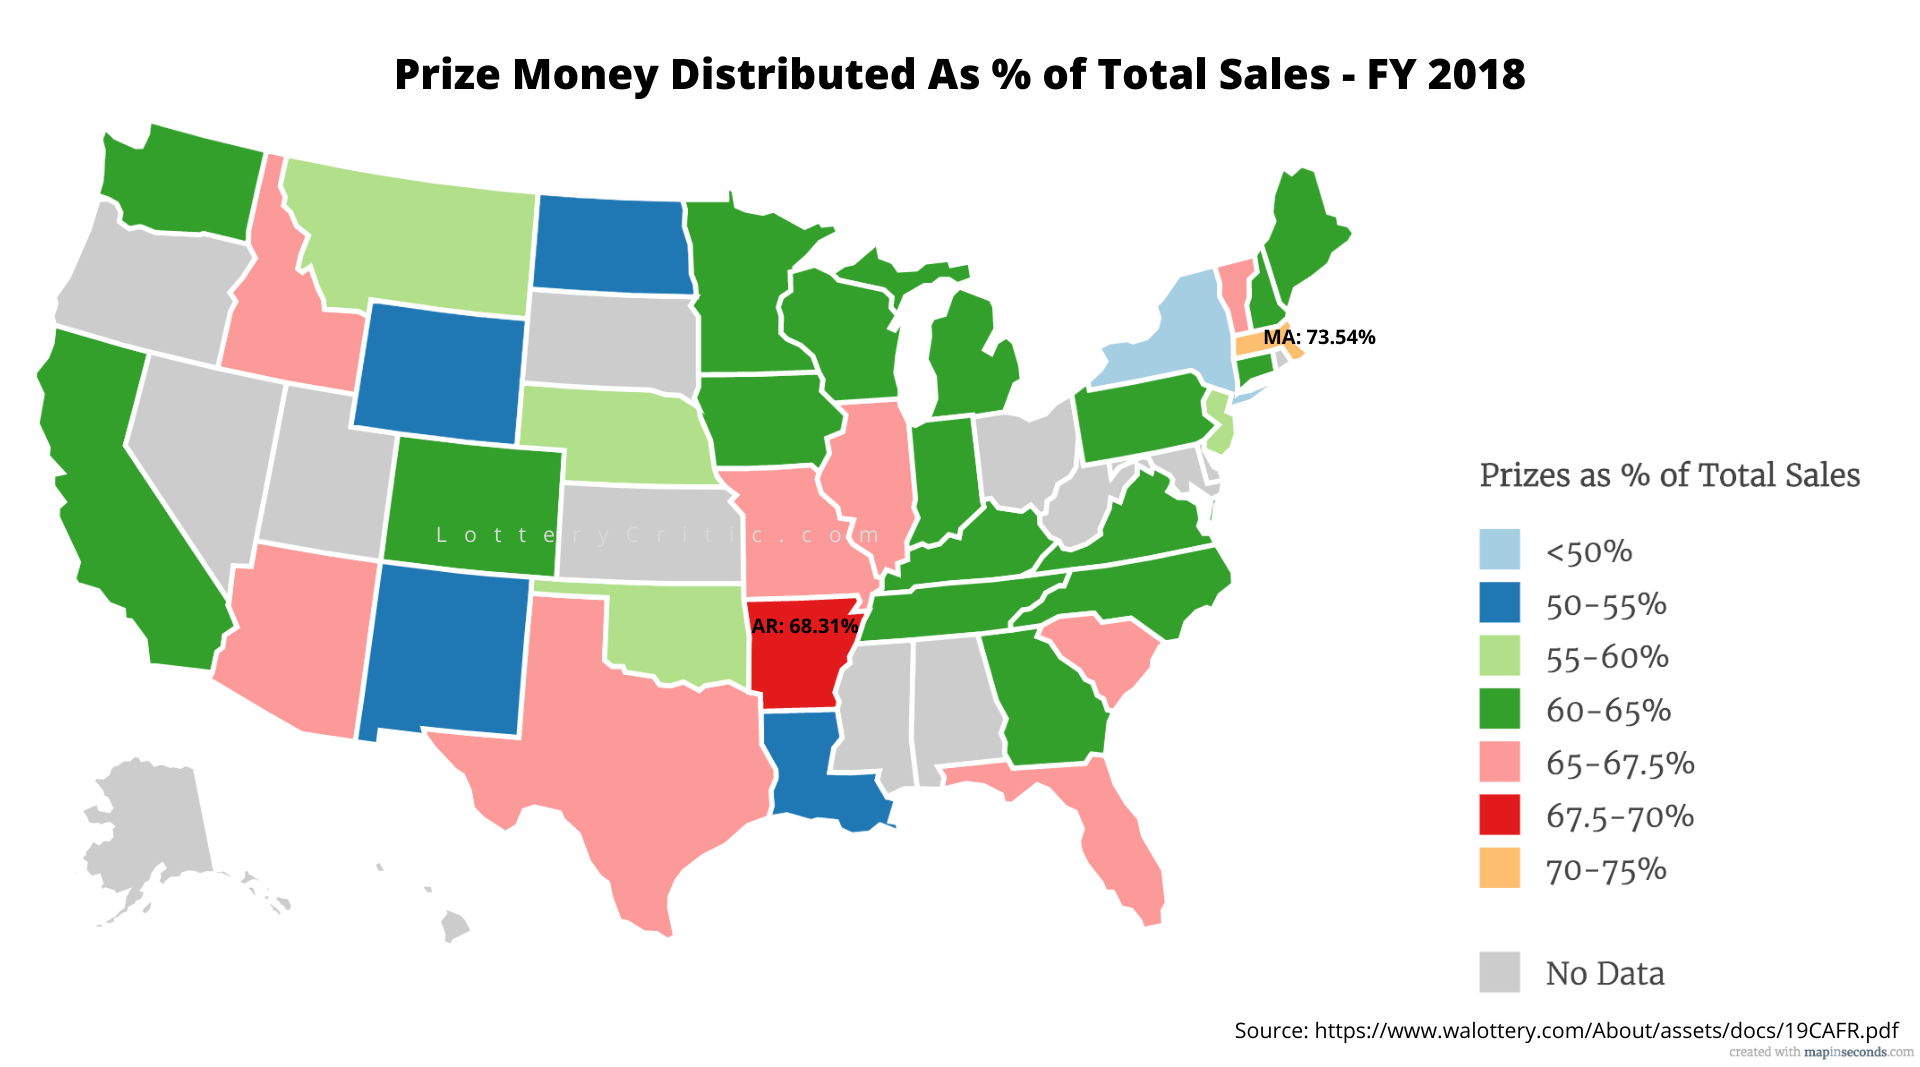 Prize Money Distributed As % of Total Sales - FY 2018